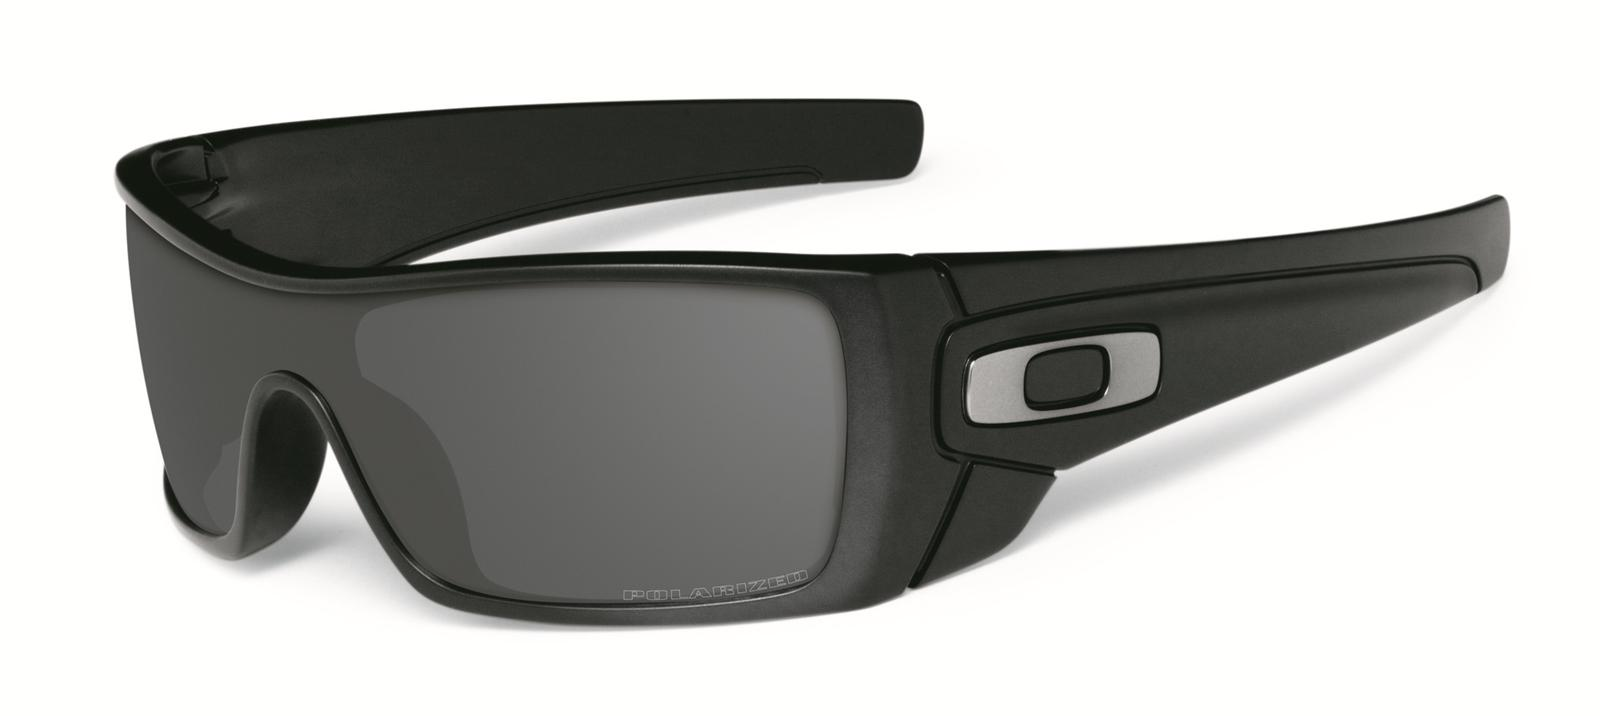 Oakley Batwolf Sunglasses OO9101-04 - Free Shipping on Orders Over  99 at  Summit Racing 57acaaeae3